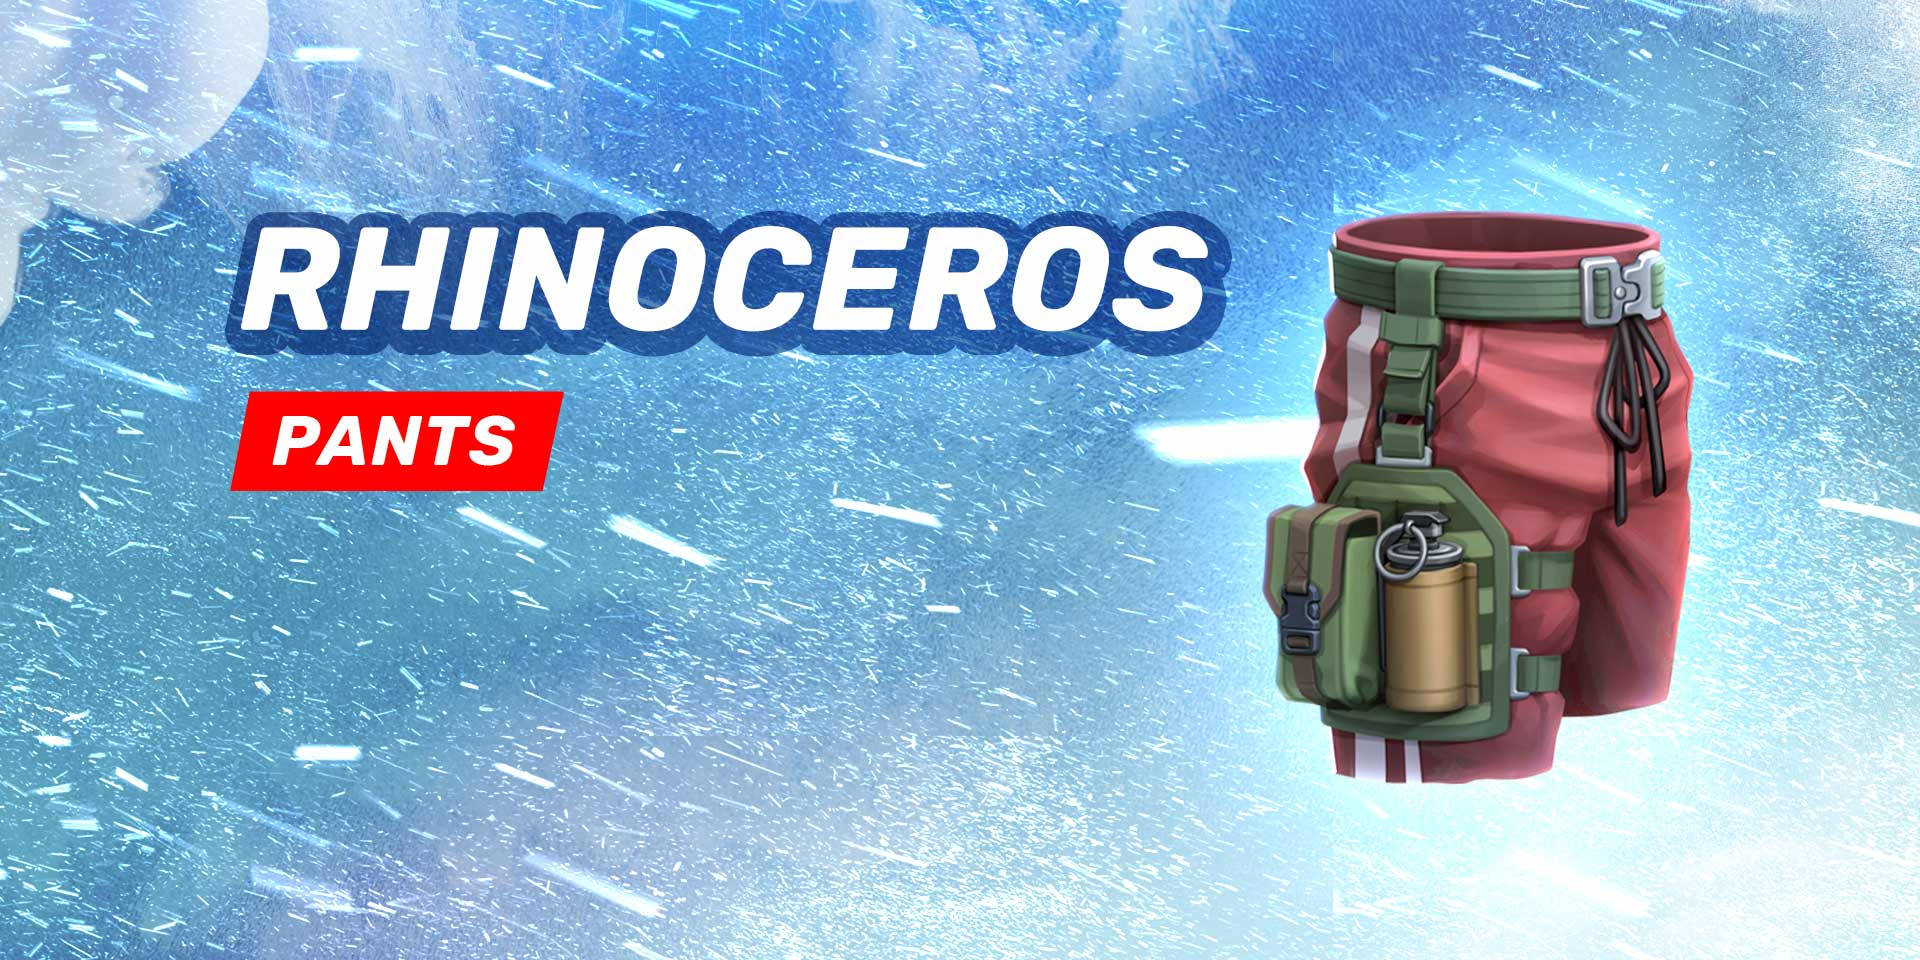 5fff0c898e44d_act2-s1-gunsopedia_Rhinoceros_header_EN